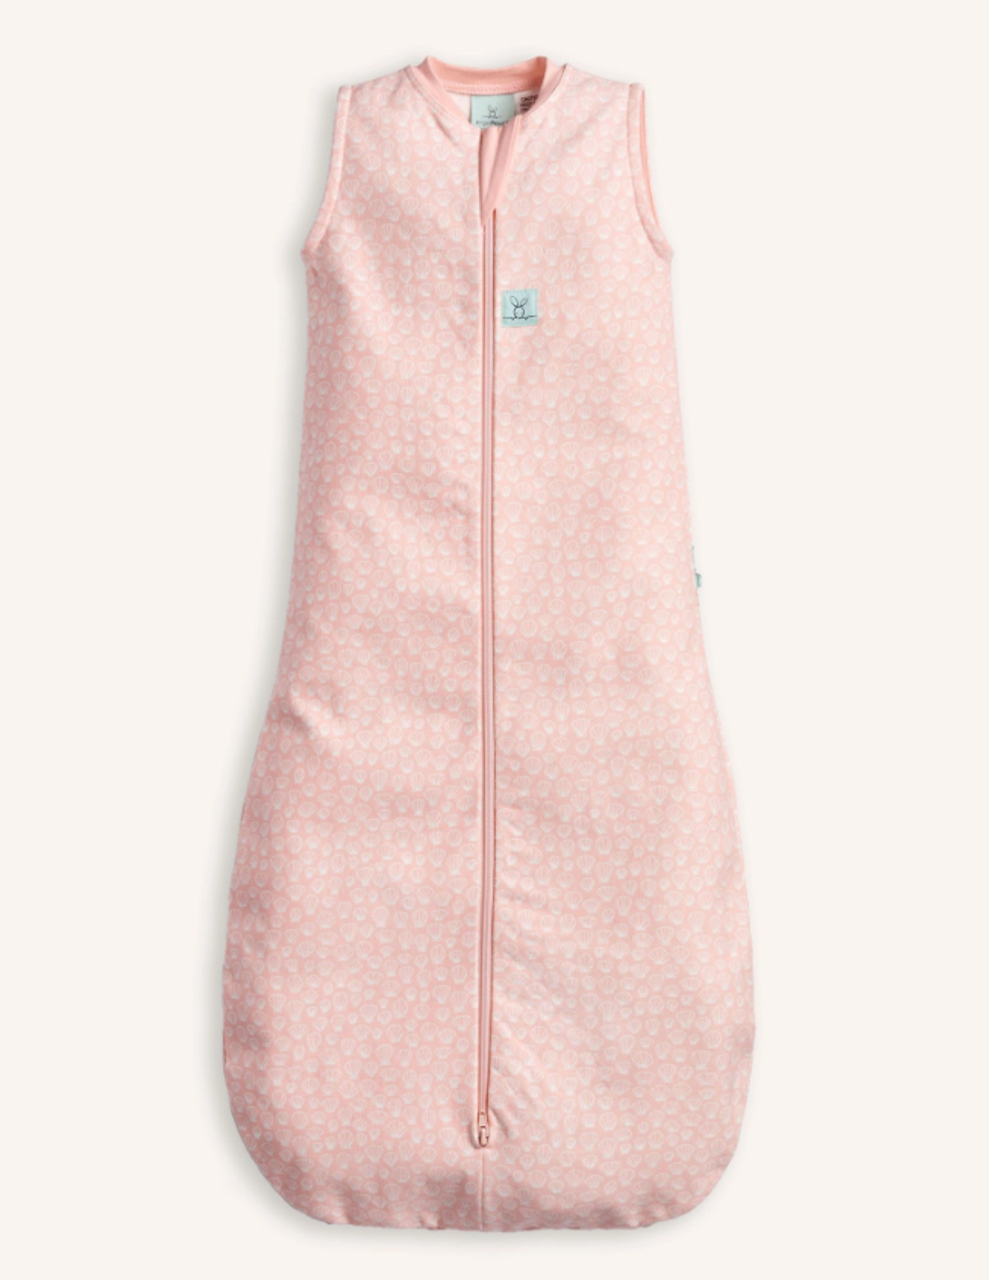 ergoPouch Jersey Sleeping Bag 0.2 TOG 3-12 months Shells at Baby Barn Discounts